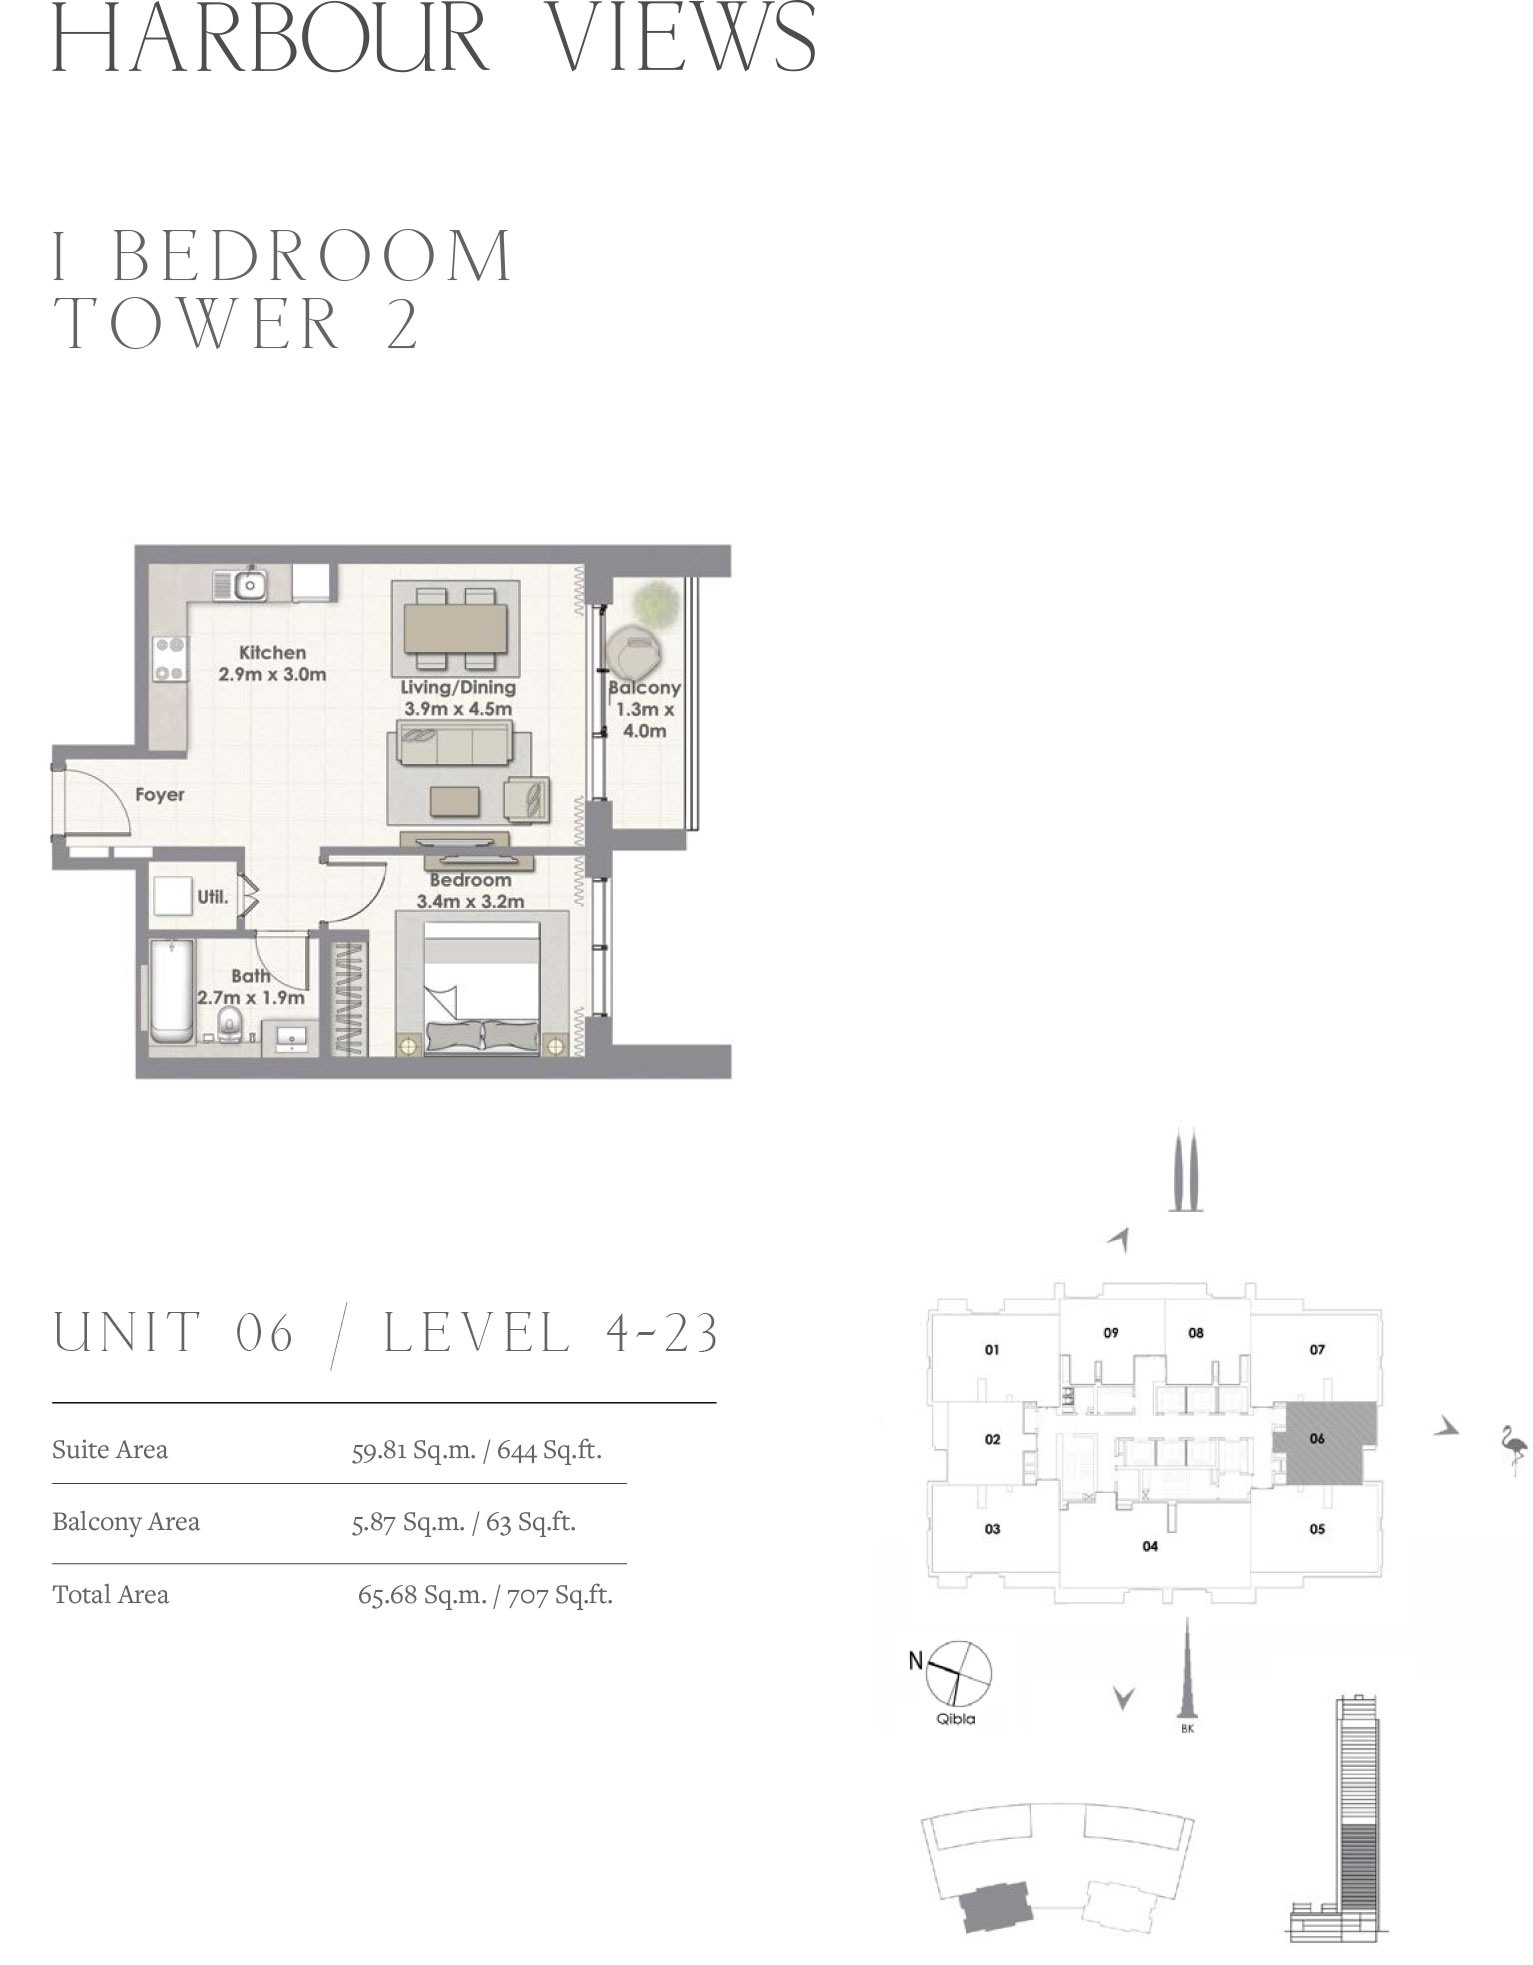 1 Bedroom Tower 2, Unit 06/Level 4-23